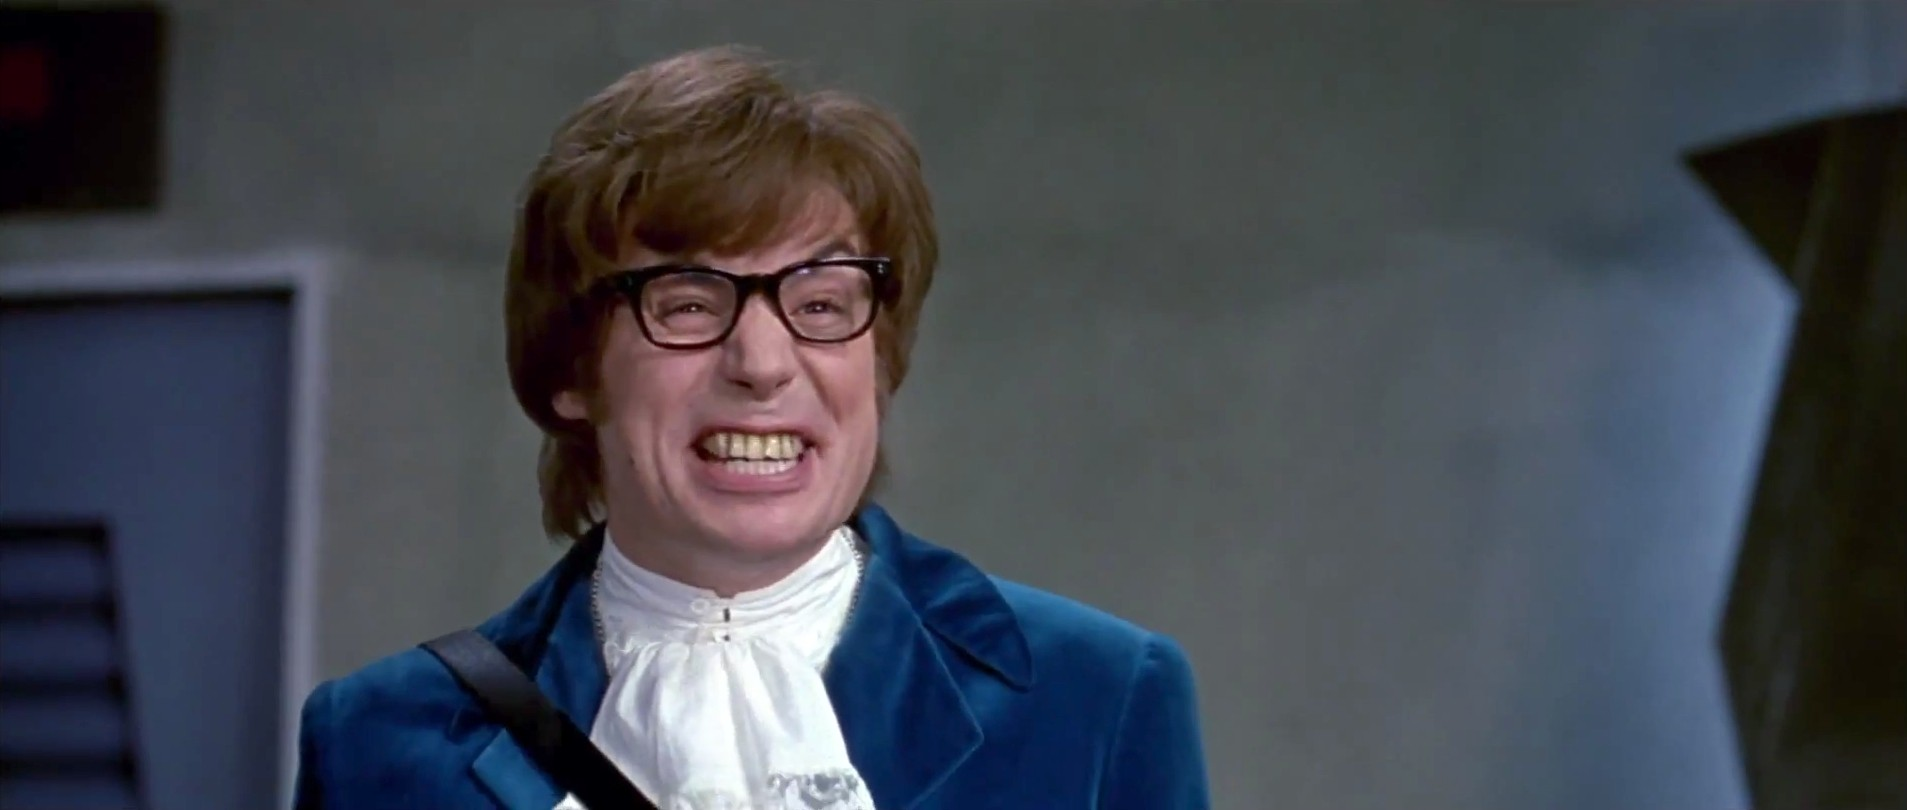 Austin Powers is 20: 15 reasons why it was all so shagadelic